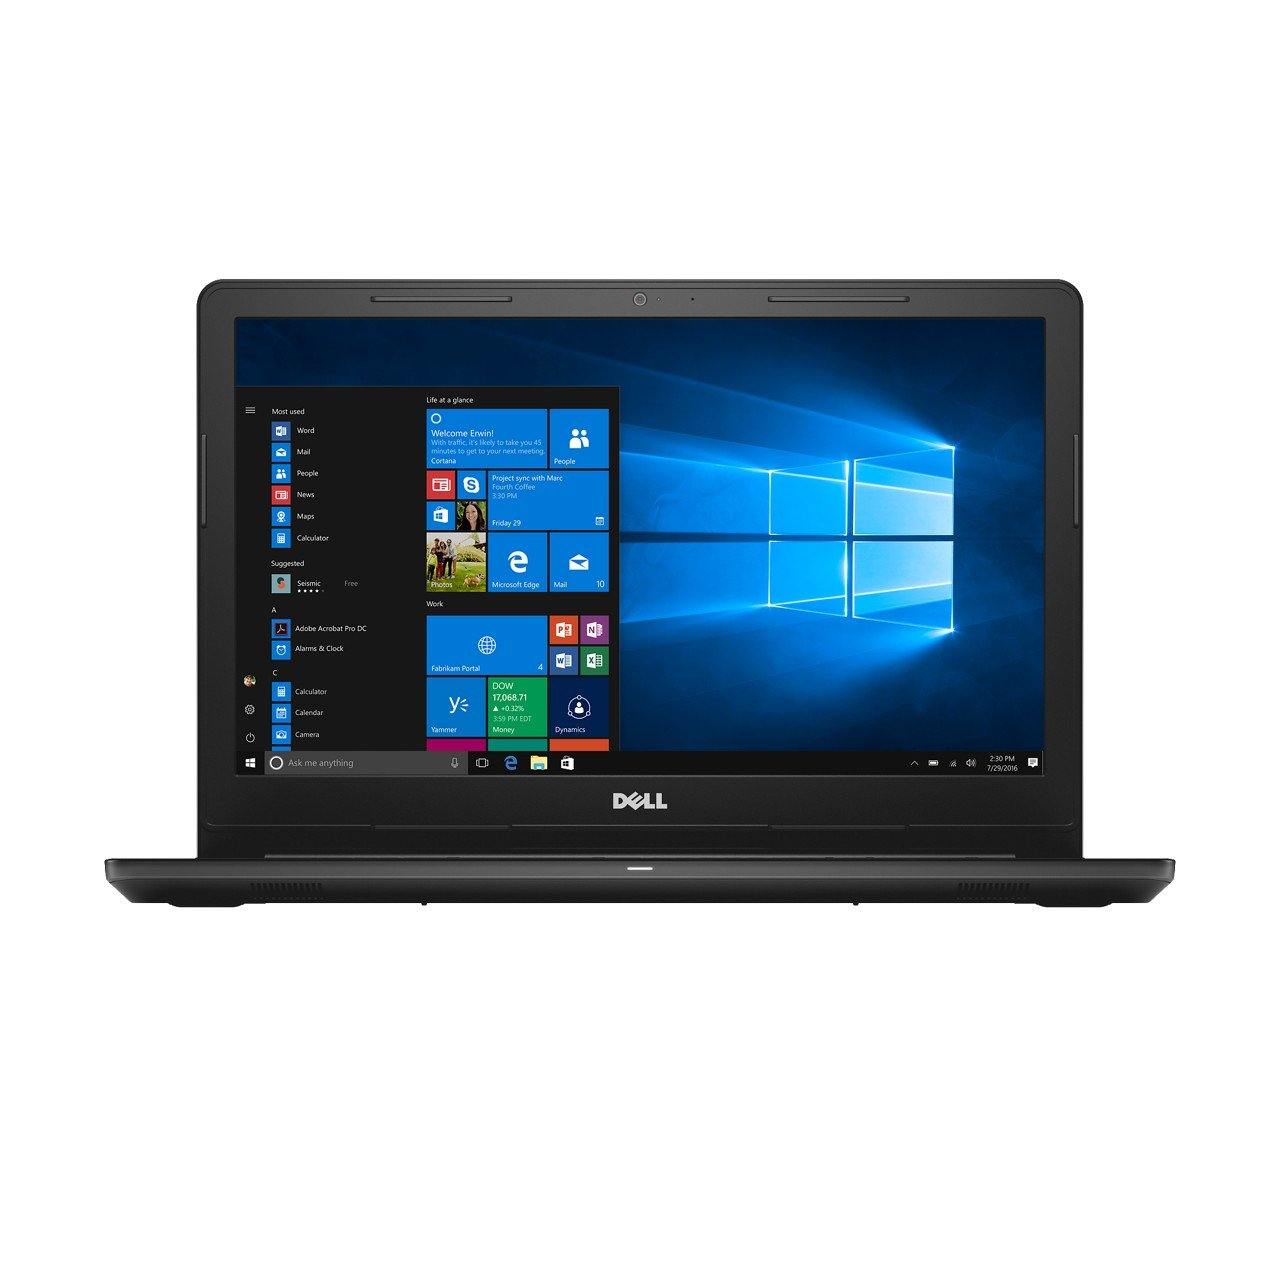 Dell Inspiron 3567 Intel Core i3 7th Gen 15.6-inch FHD...